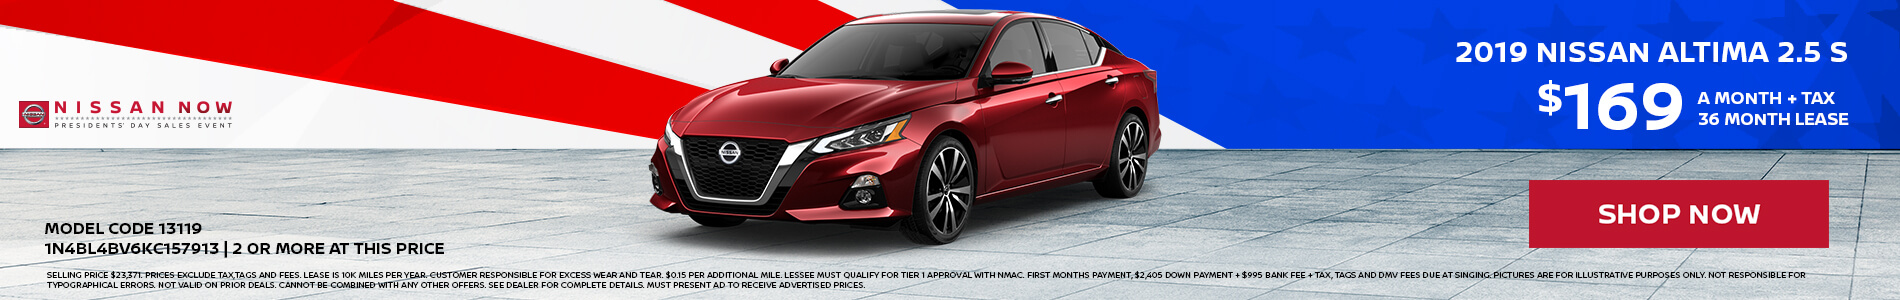 2019 Nissan Altima $169 Lease